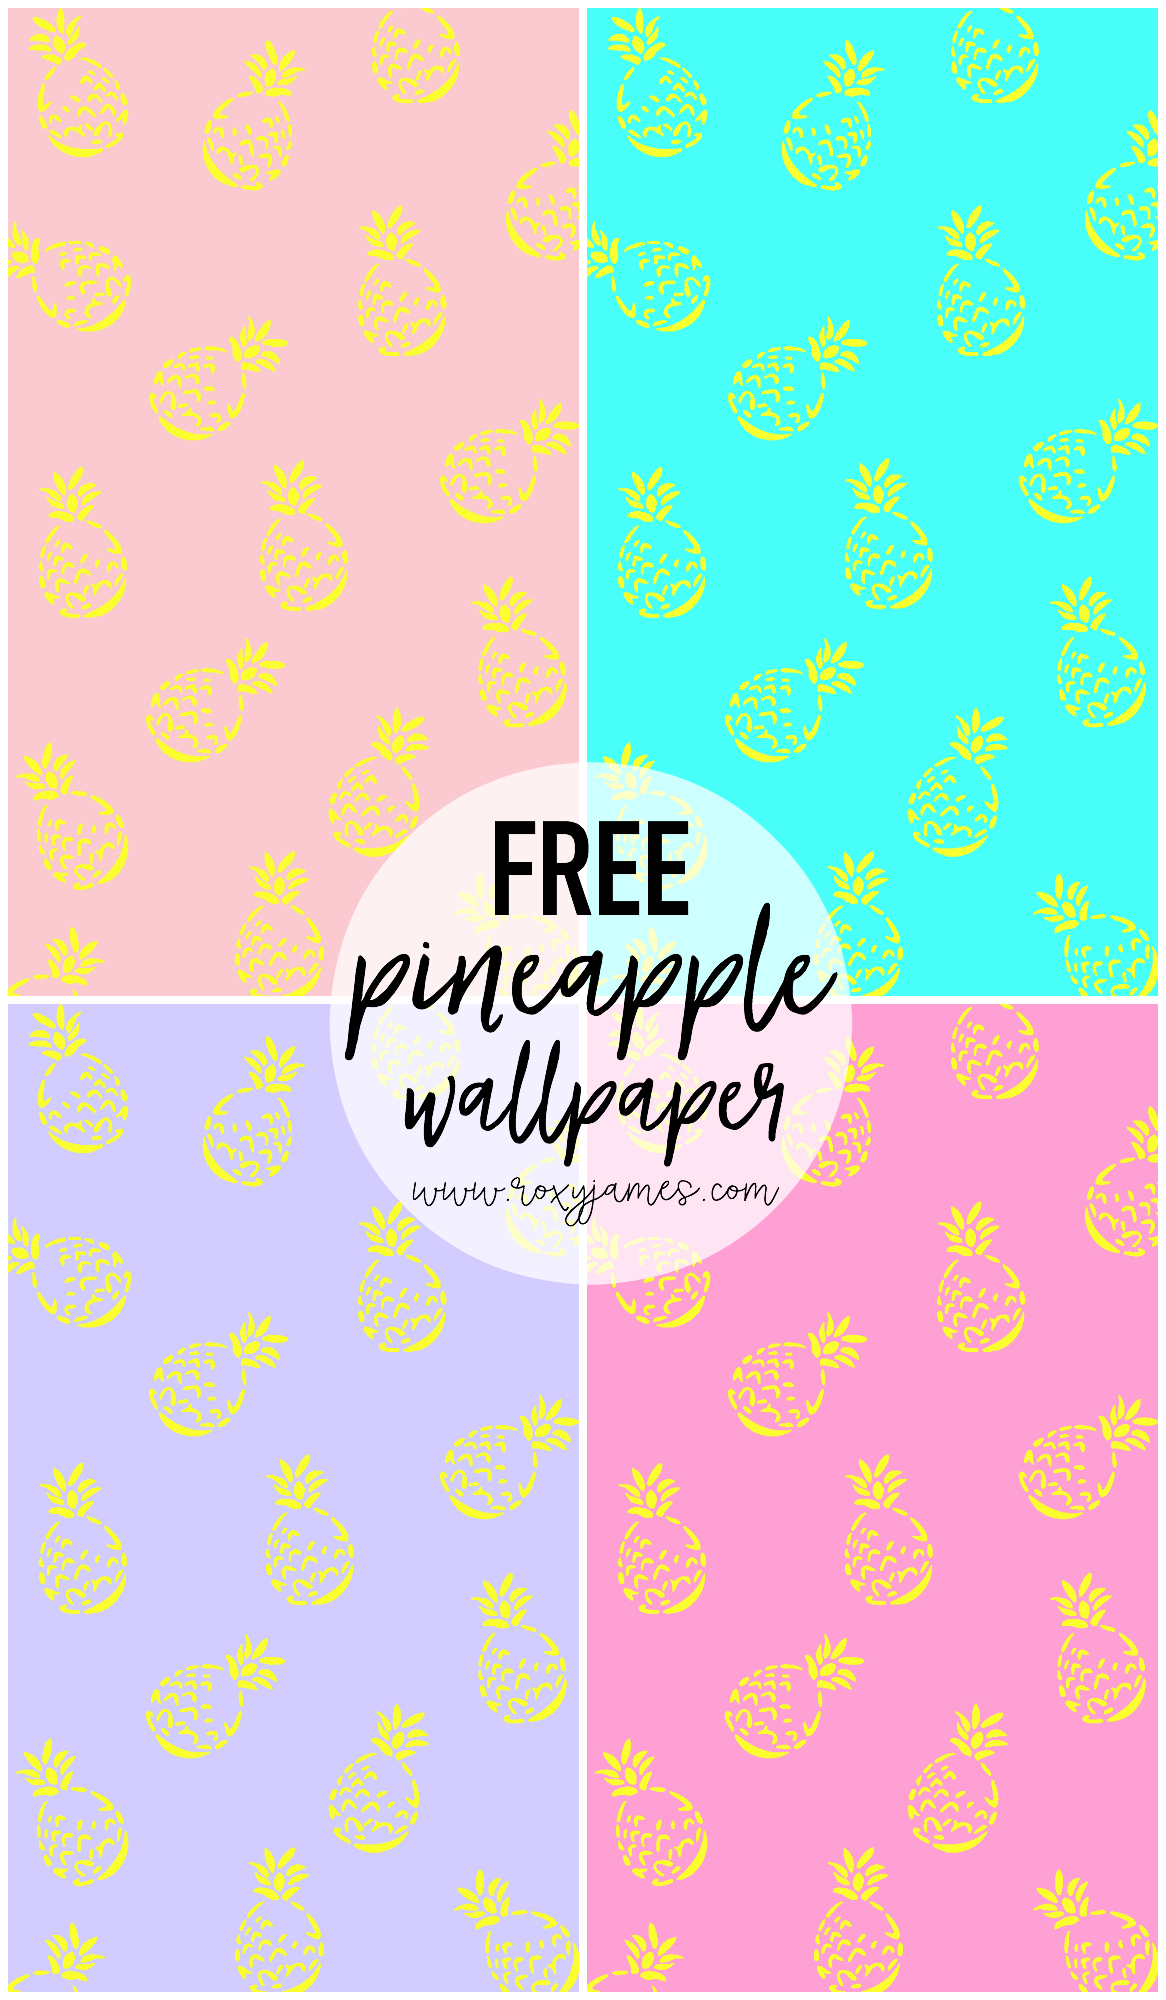 FREE Pineapple Wallpaper